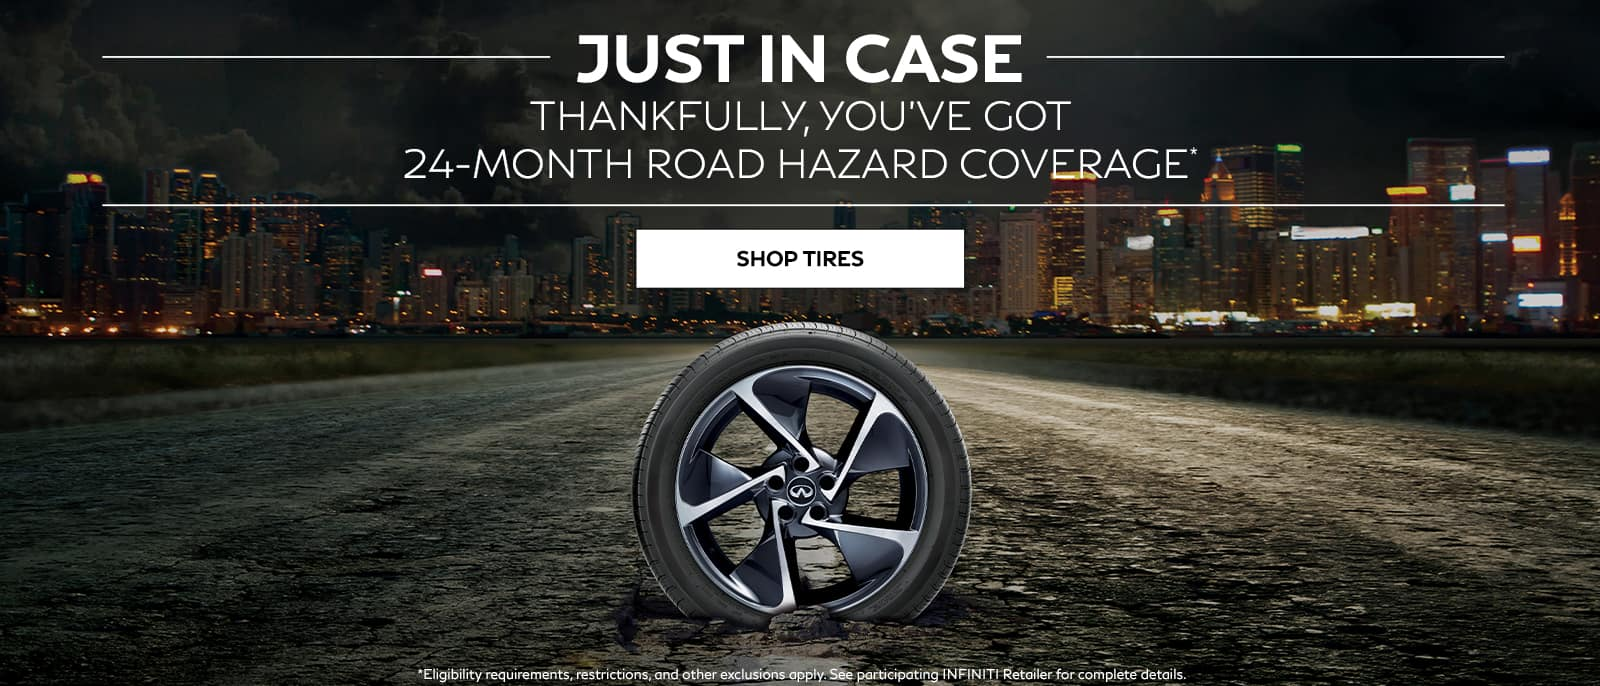 Tire with city skyline in background. Just in case thankfully, you've got 24-month road hazard coverage. Shop tires. Restrictions apply, see participating retailers for complete details.